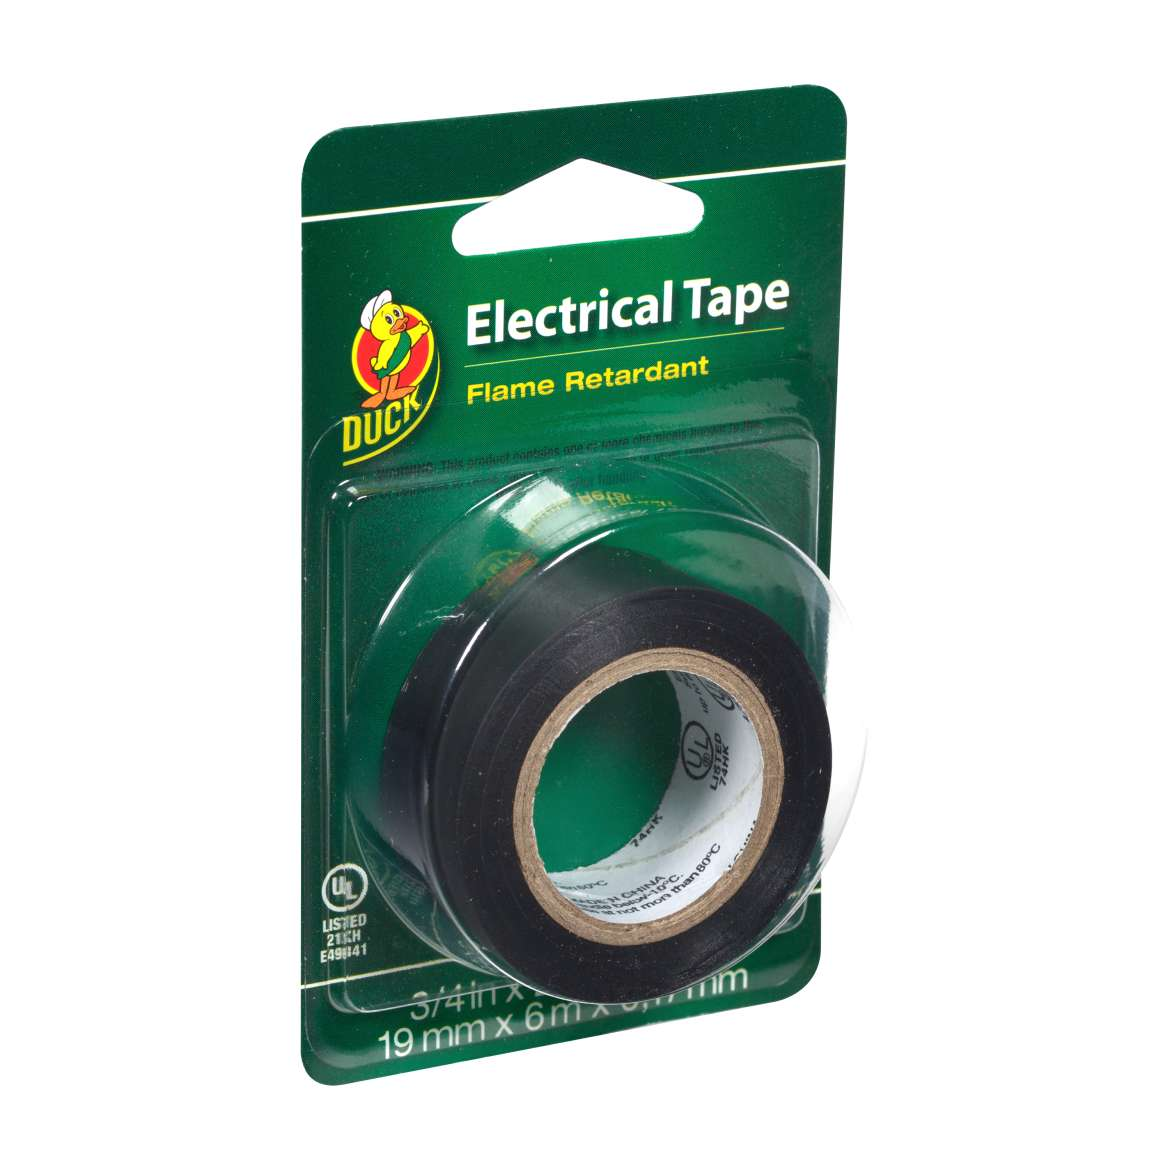 Duck® Brand Professional Electrical Tape - Black, .75 in. x 20 ft. x 7 mil. Image